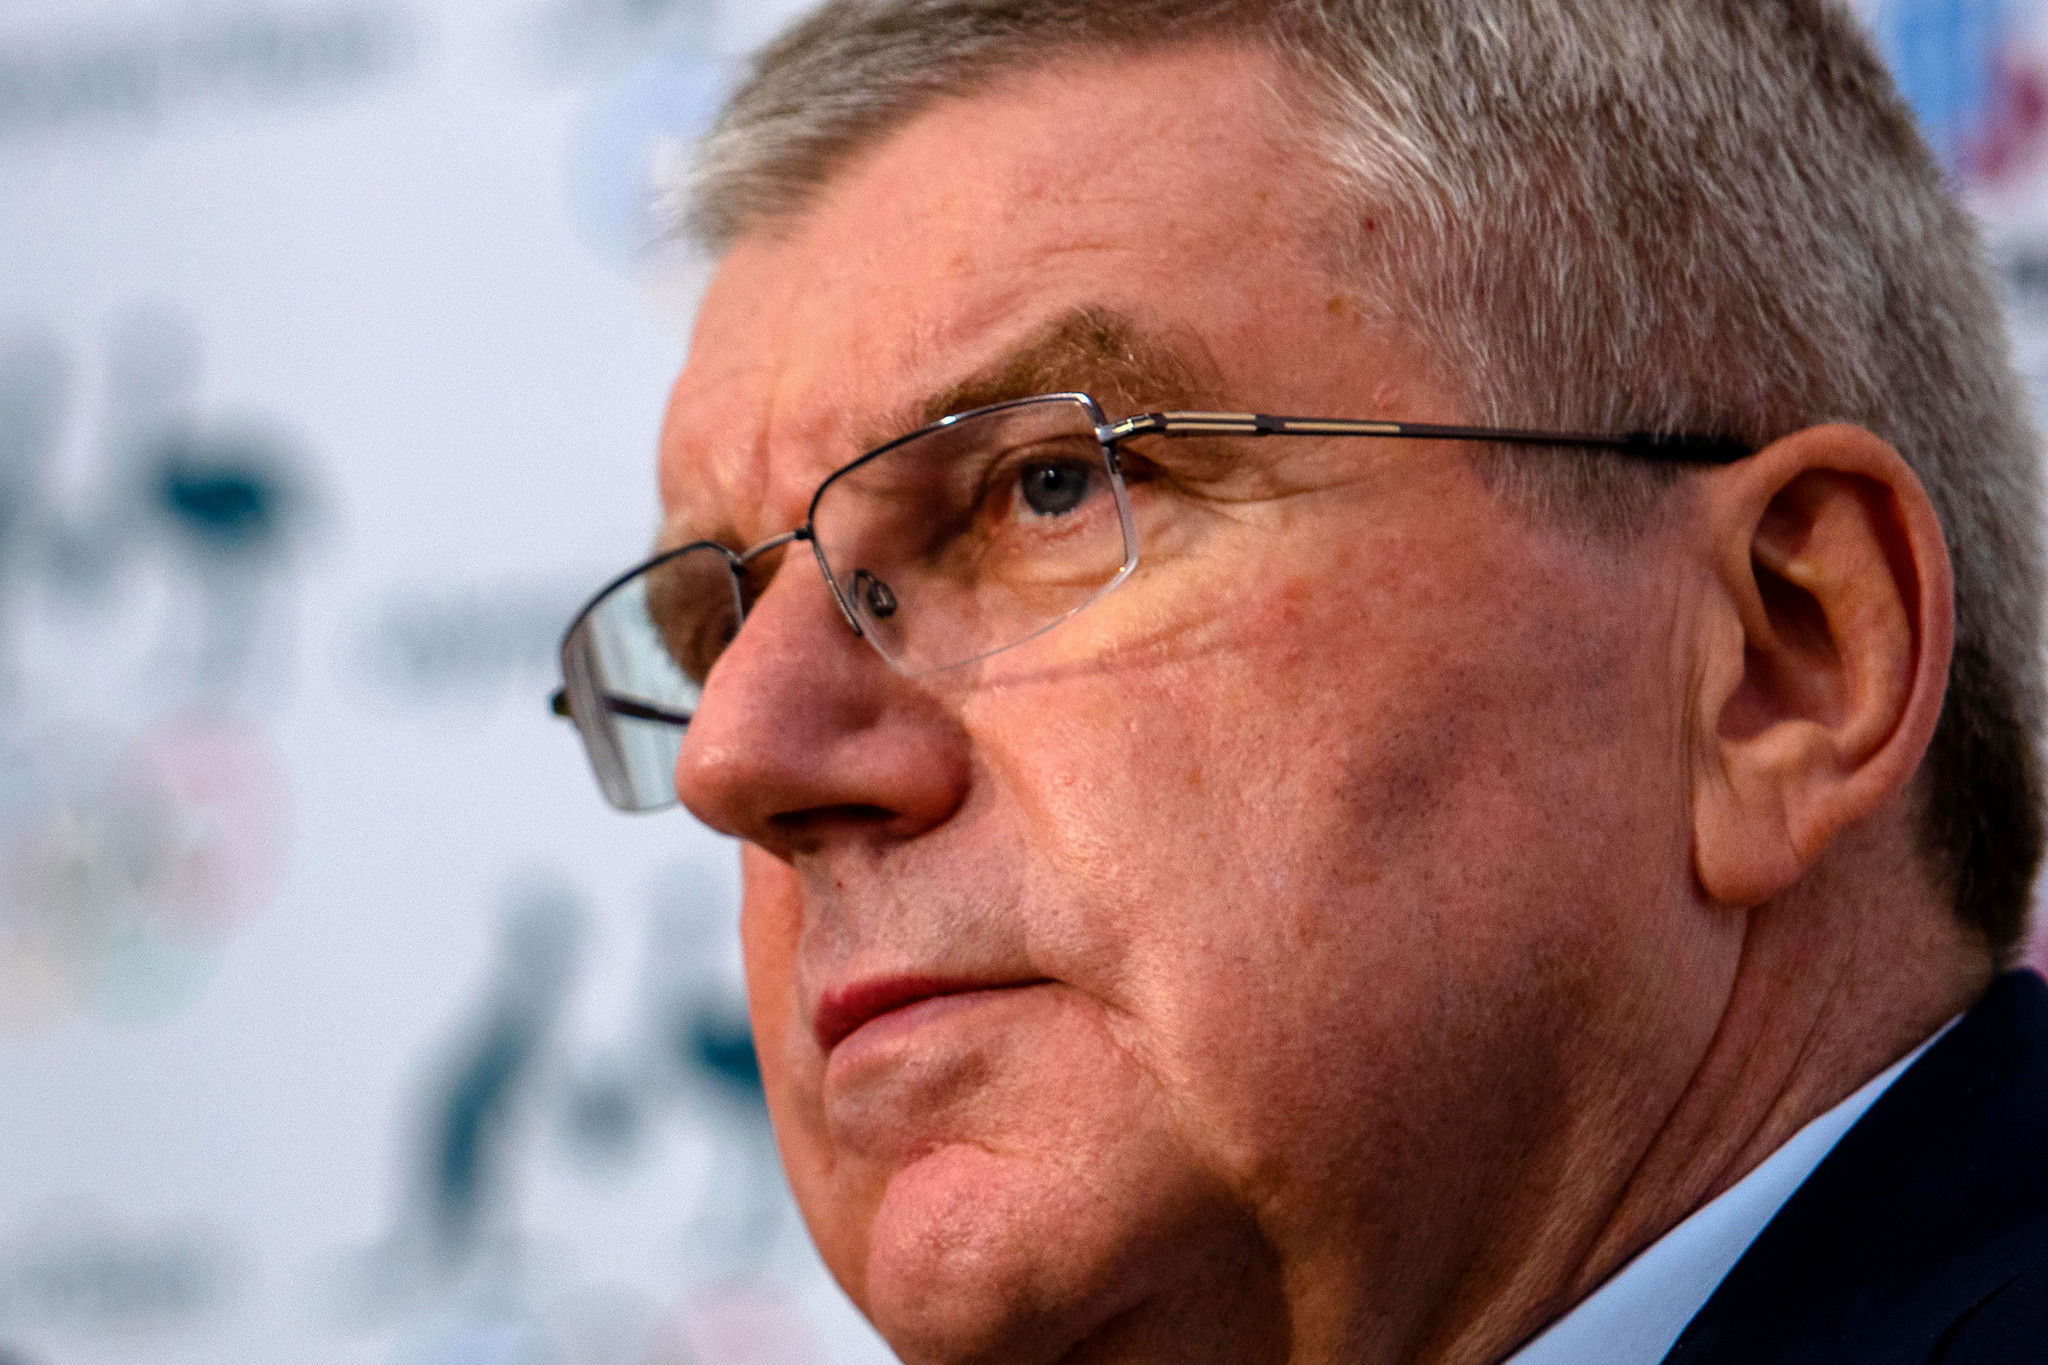 IOC President Thomas Bach has admitted an organisation other than AIBA could organise the boxing tournament at Tokyo 2020 ©Getty Images